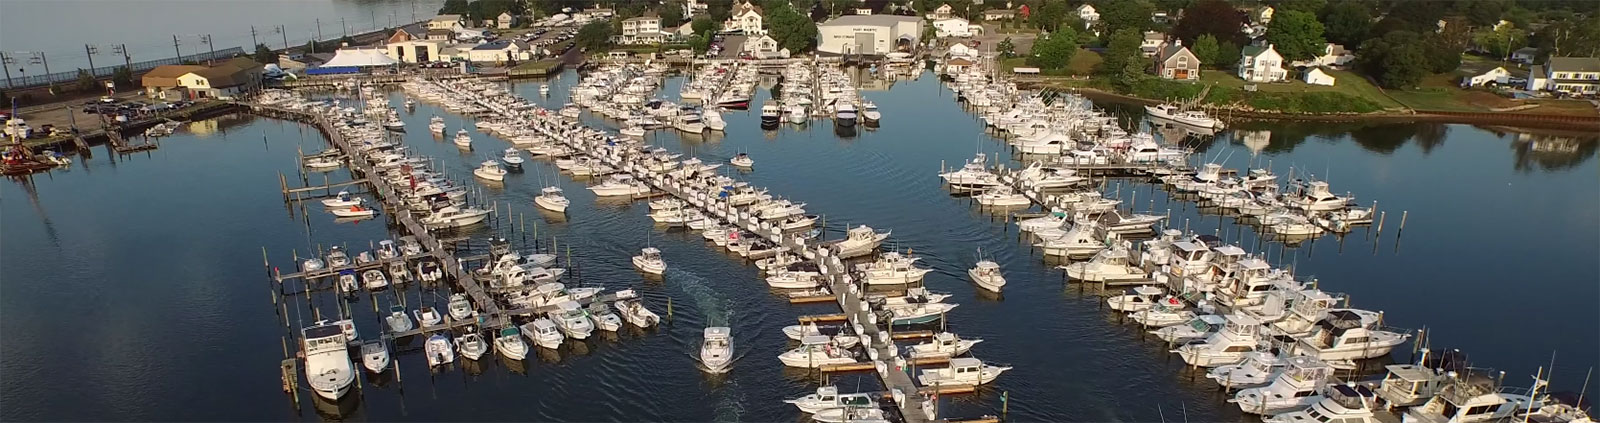 Boats Incorporated Marina Aerial